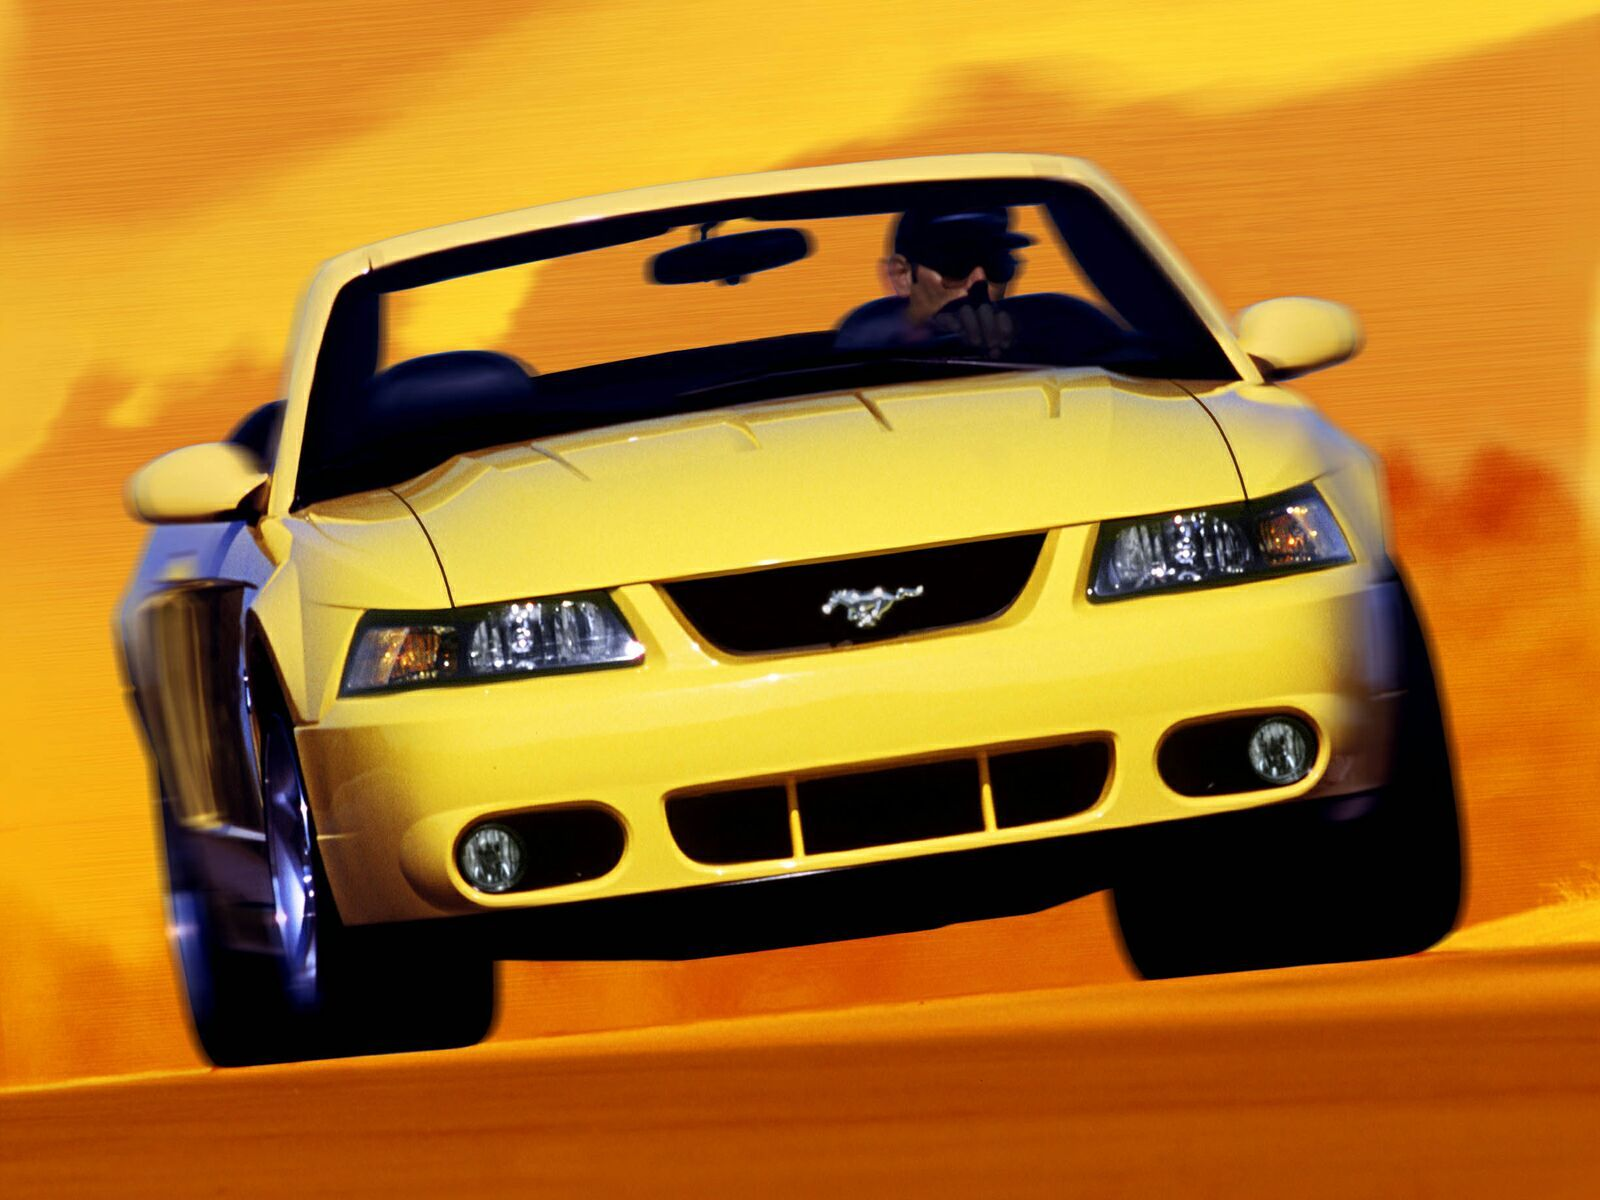 Ford Focus Svt For Sale >> 2003 - 2004 Ford SVT Mustang Cobra Pictures, Photos, Wallpapers. | Top Speed